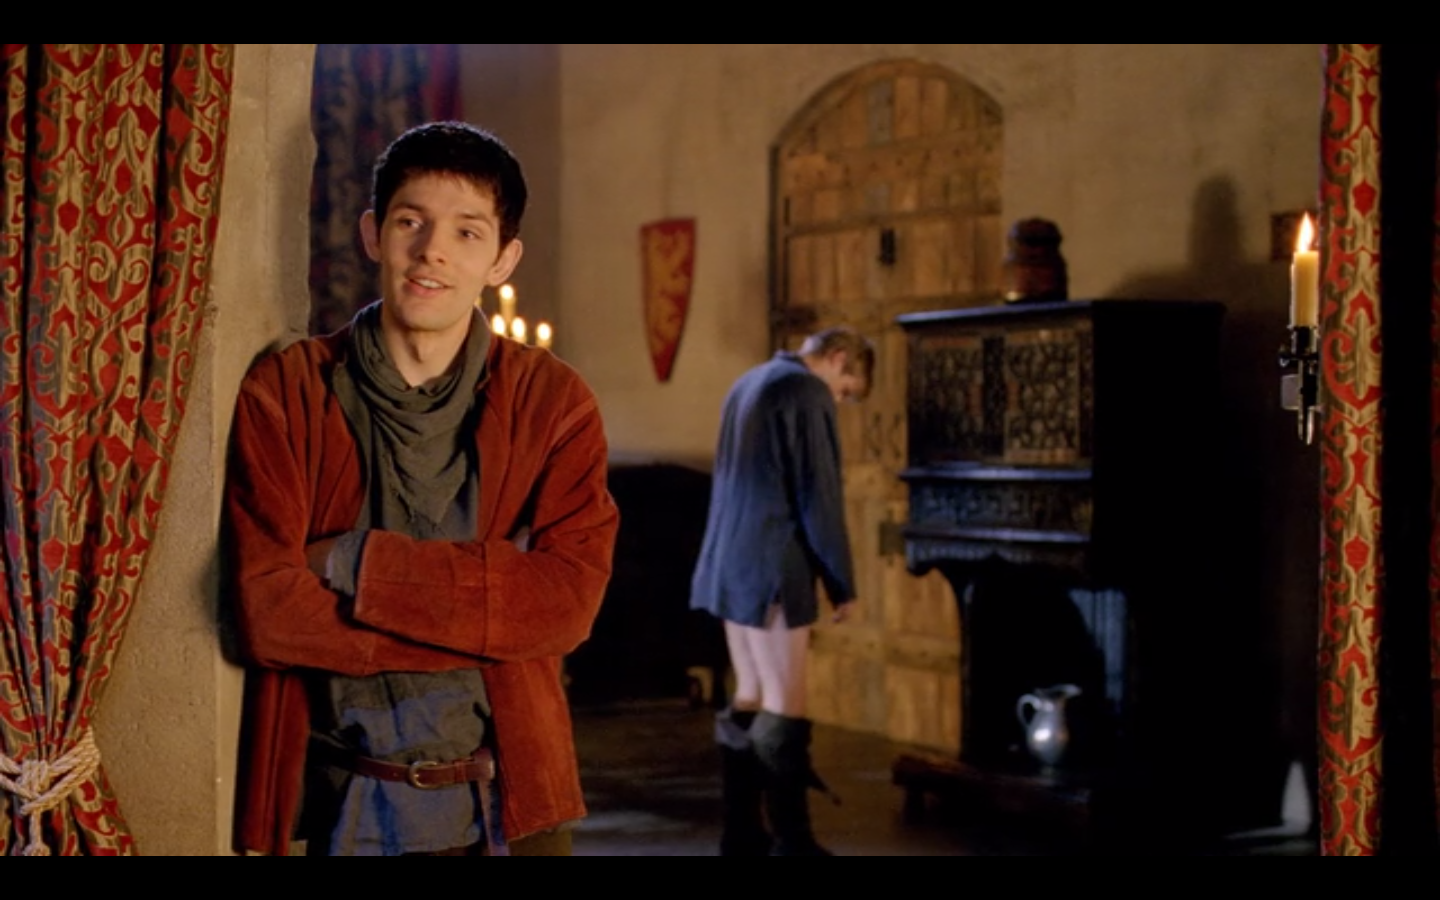 Merlin Club S04e03 The Wicked Day Or The One Where Uther Dies But Not The Way I Want Him To Trout Nation